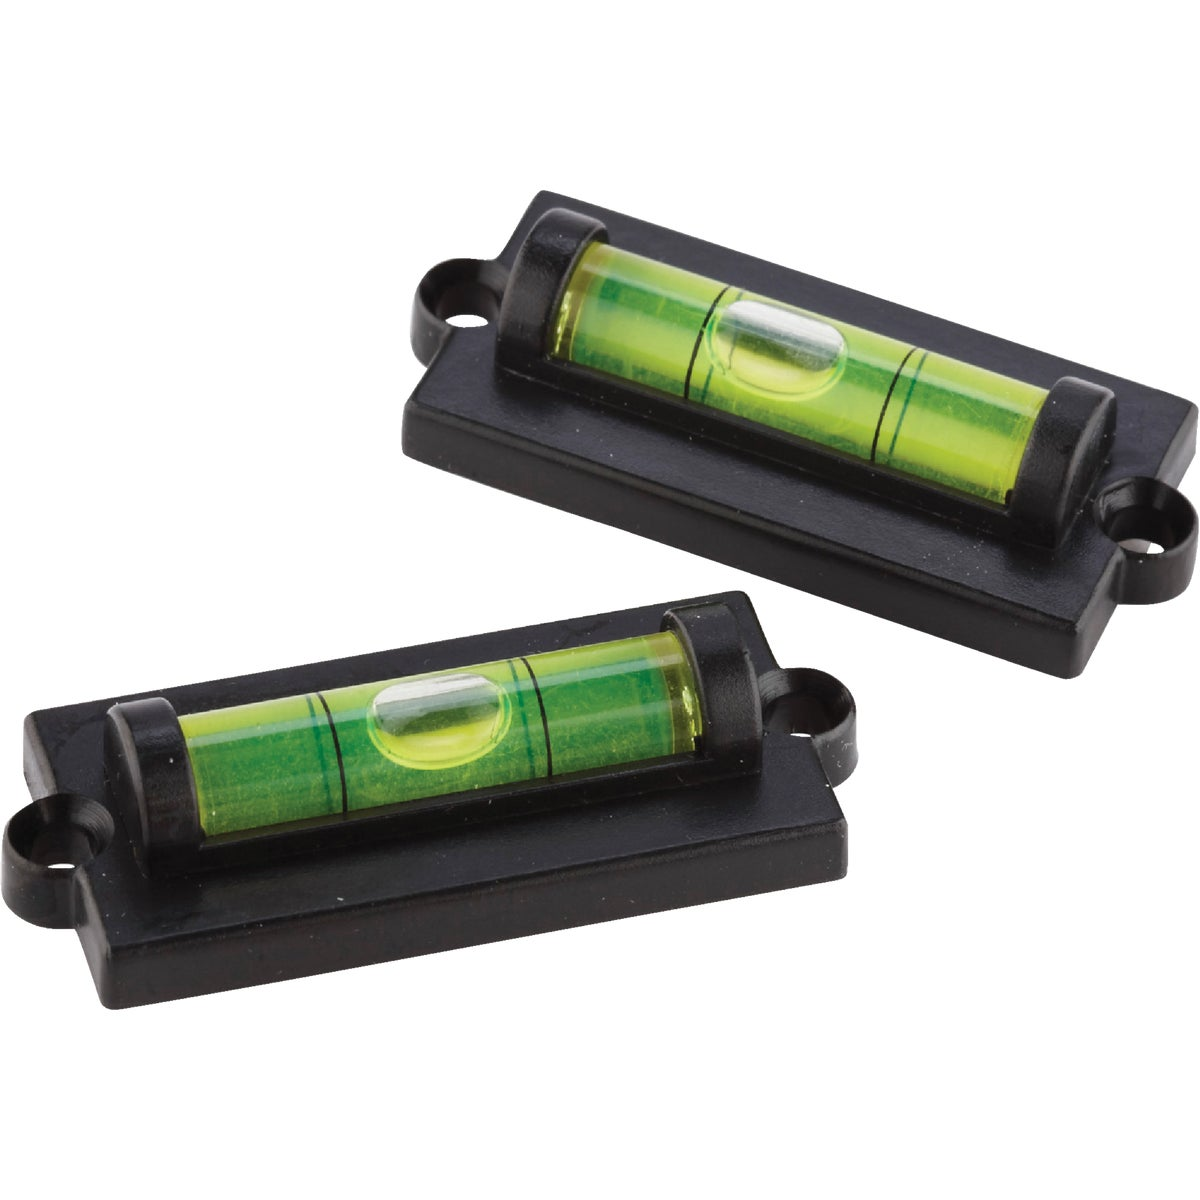 2PK STANDARD LEVELS - 25523 by Camco Mfg.